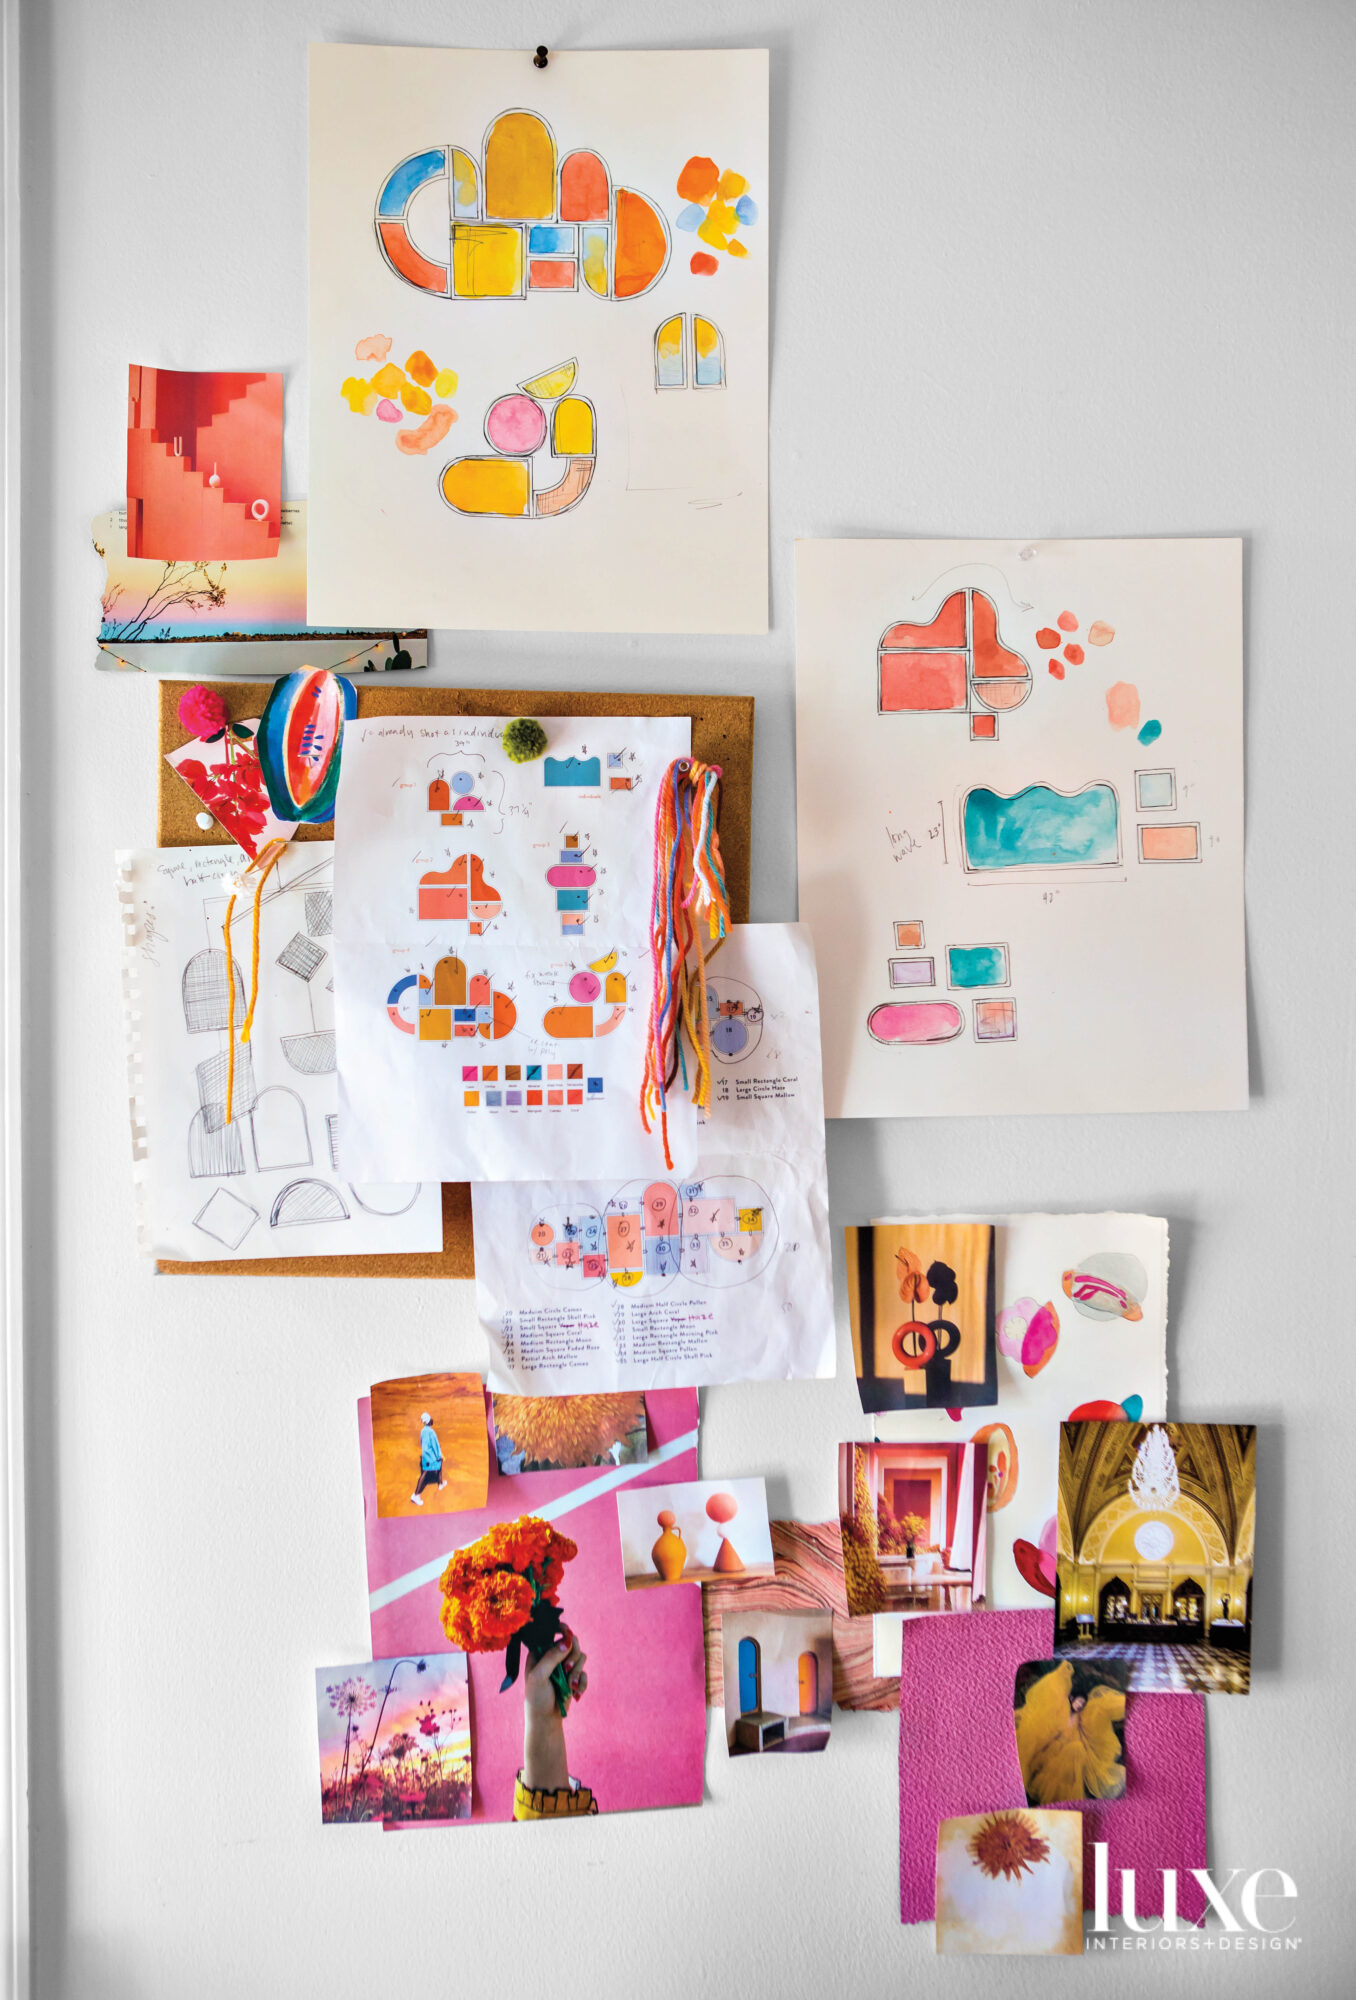 a mood board of colorful drawings is displayed on a wall in artist Hayley Sheldon's studio